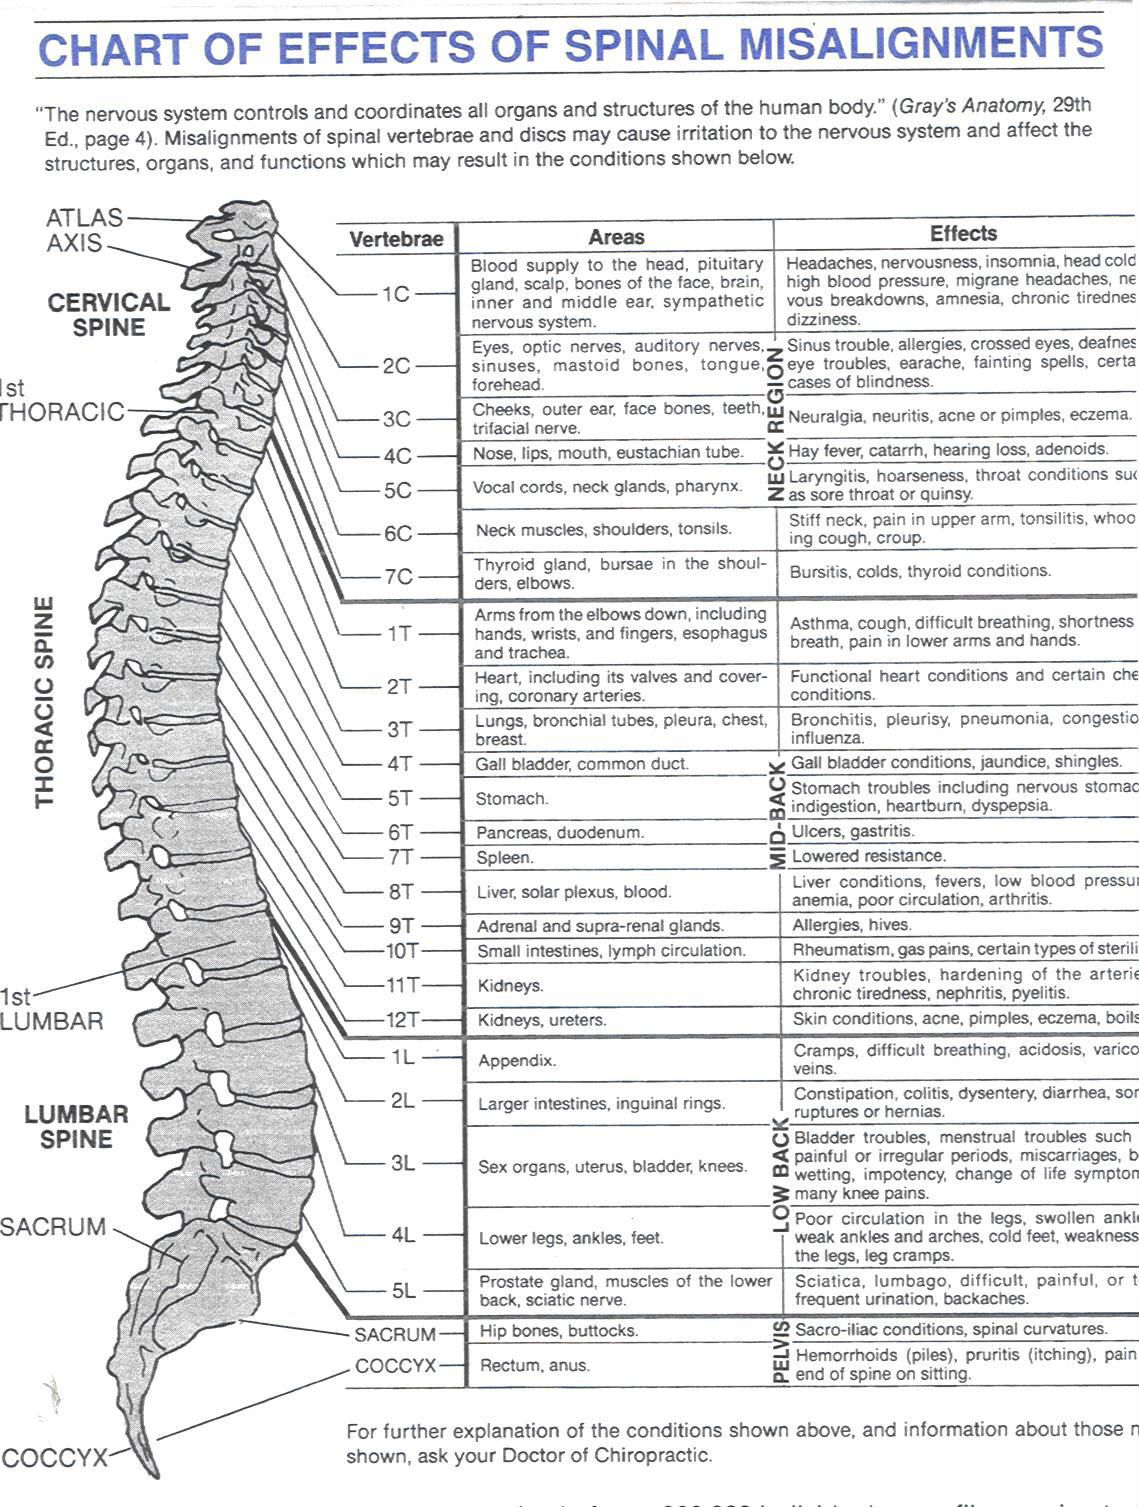 Chronic Low Back Pain - annals.org